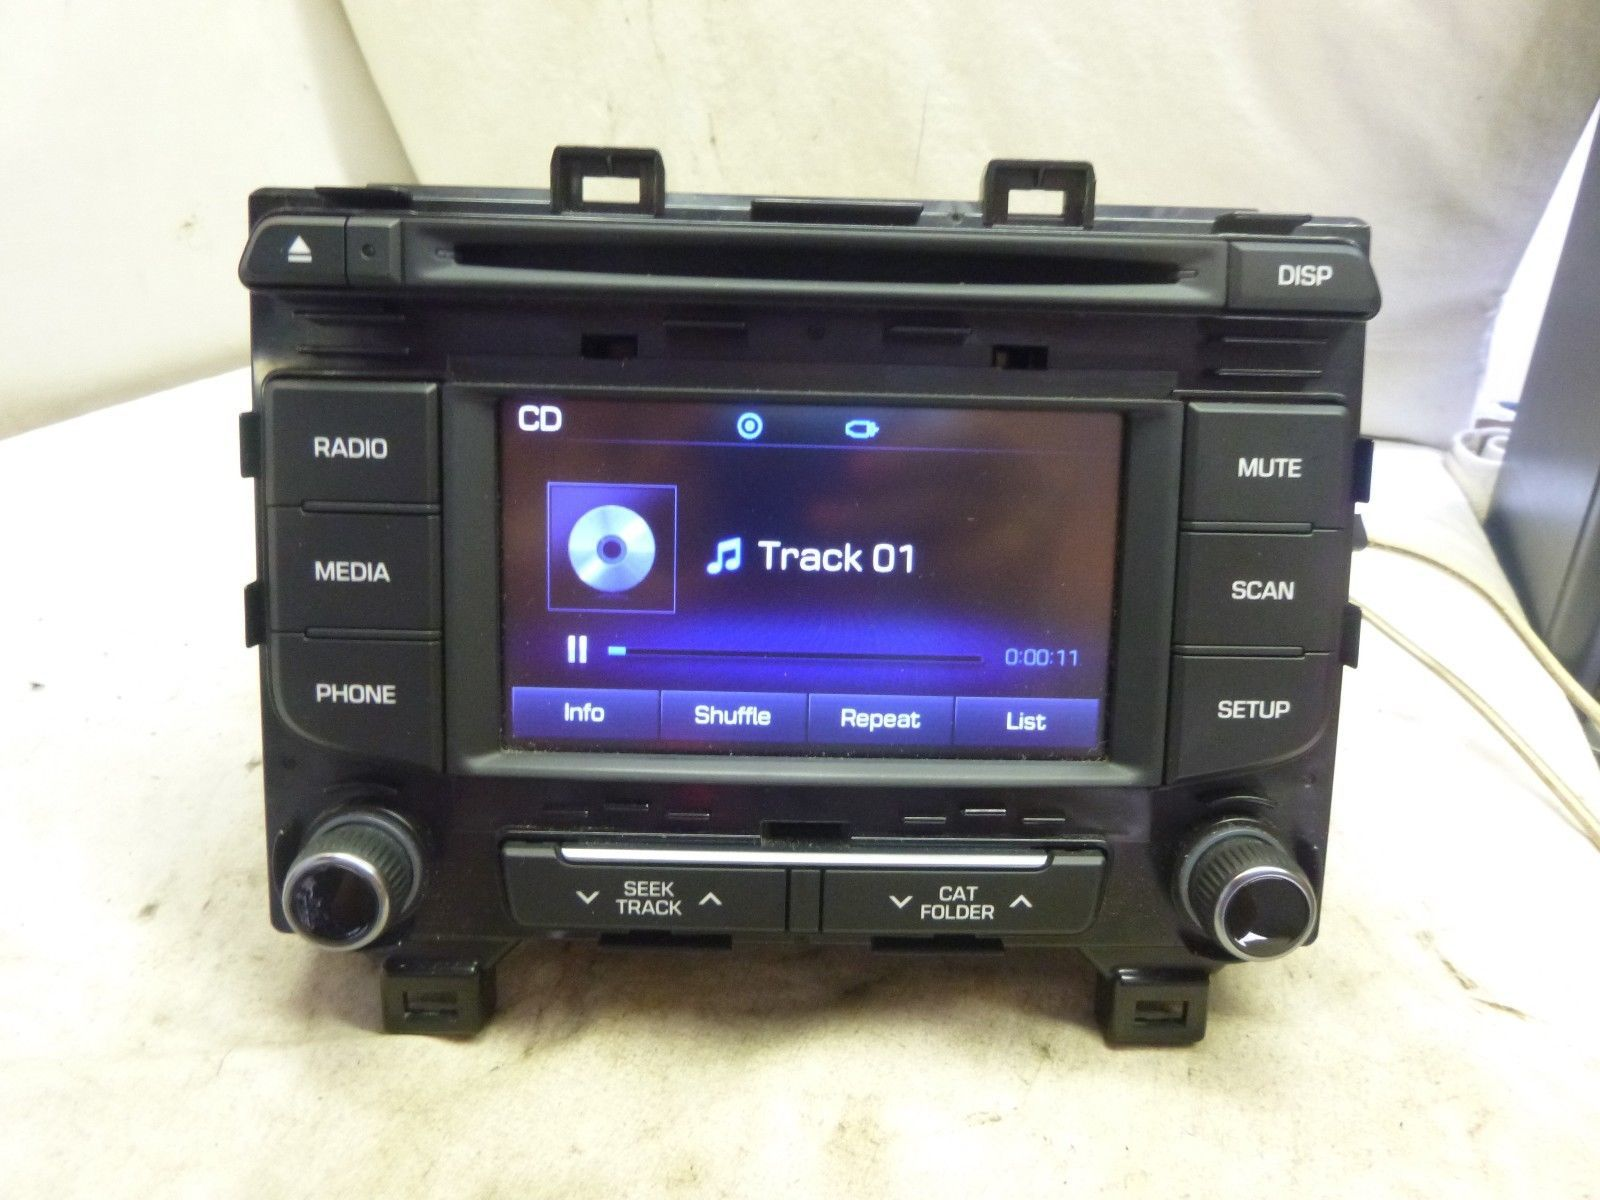 15 16 17 Hyundai Sonata Radio Cd Player 96180-C20004X Bulk 713